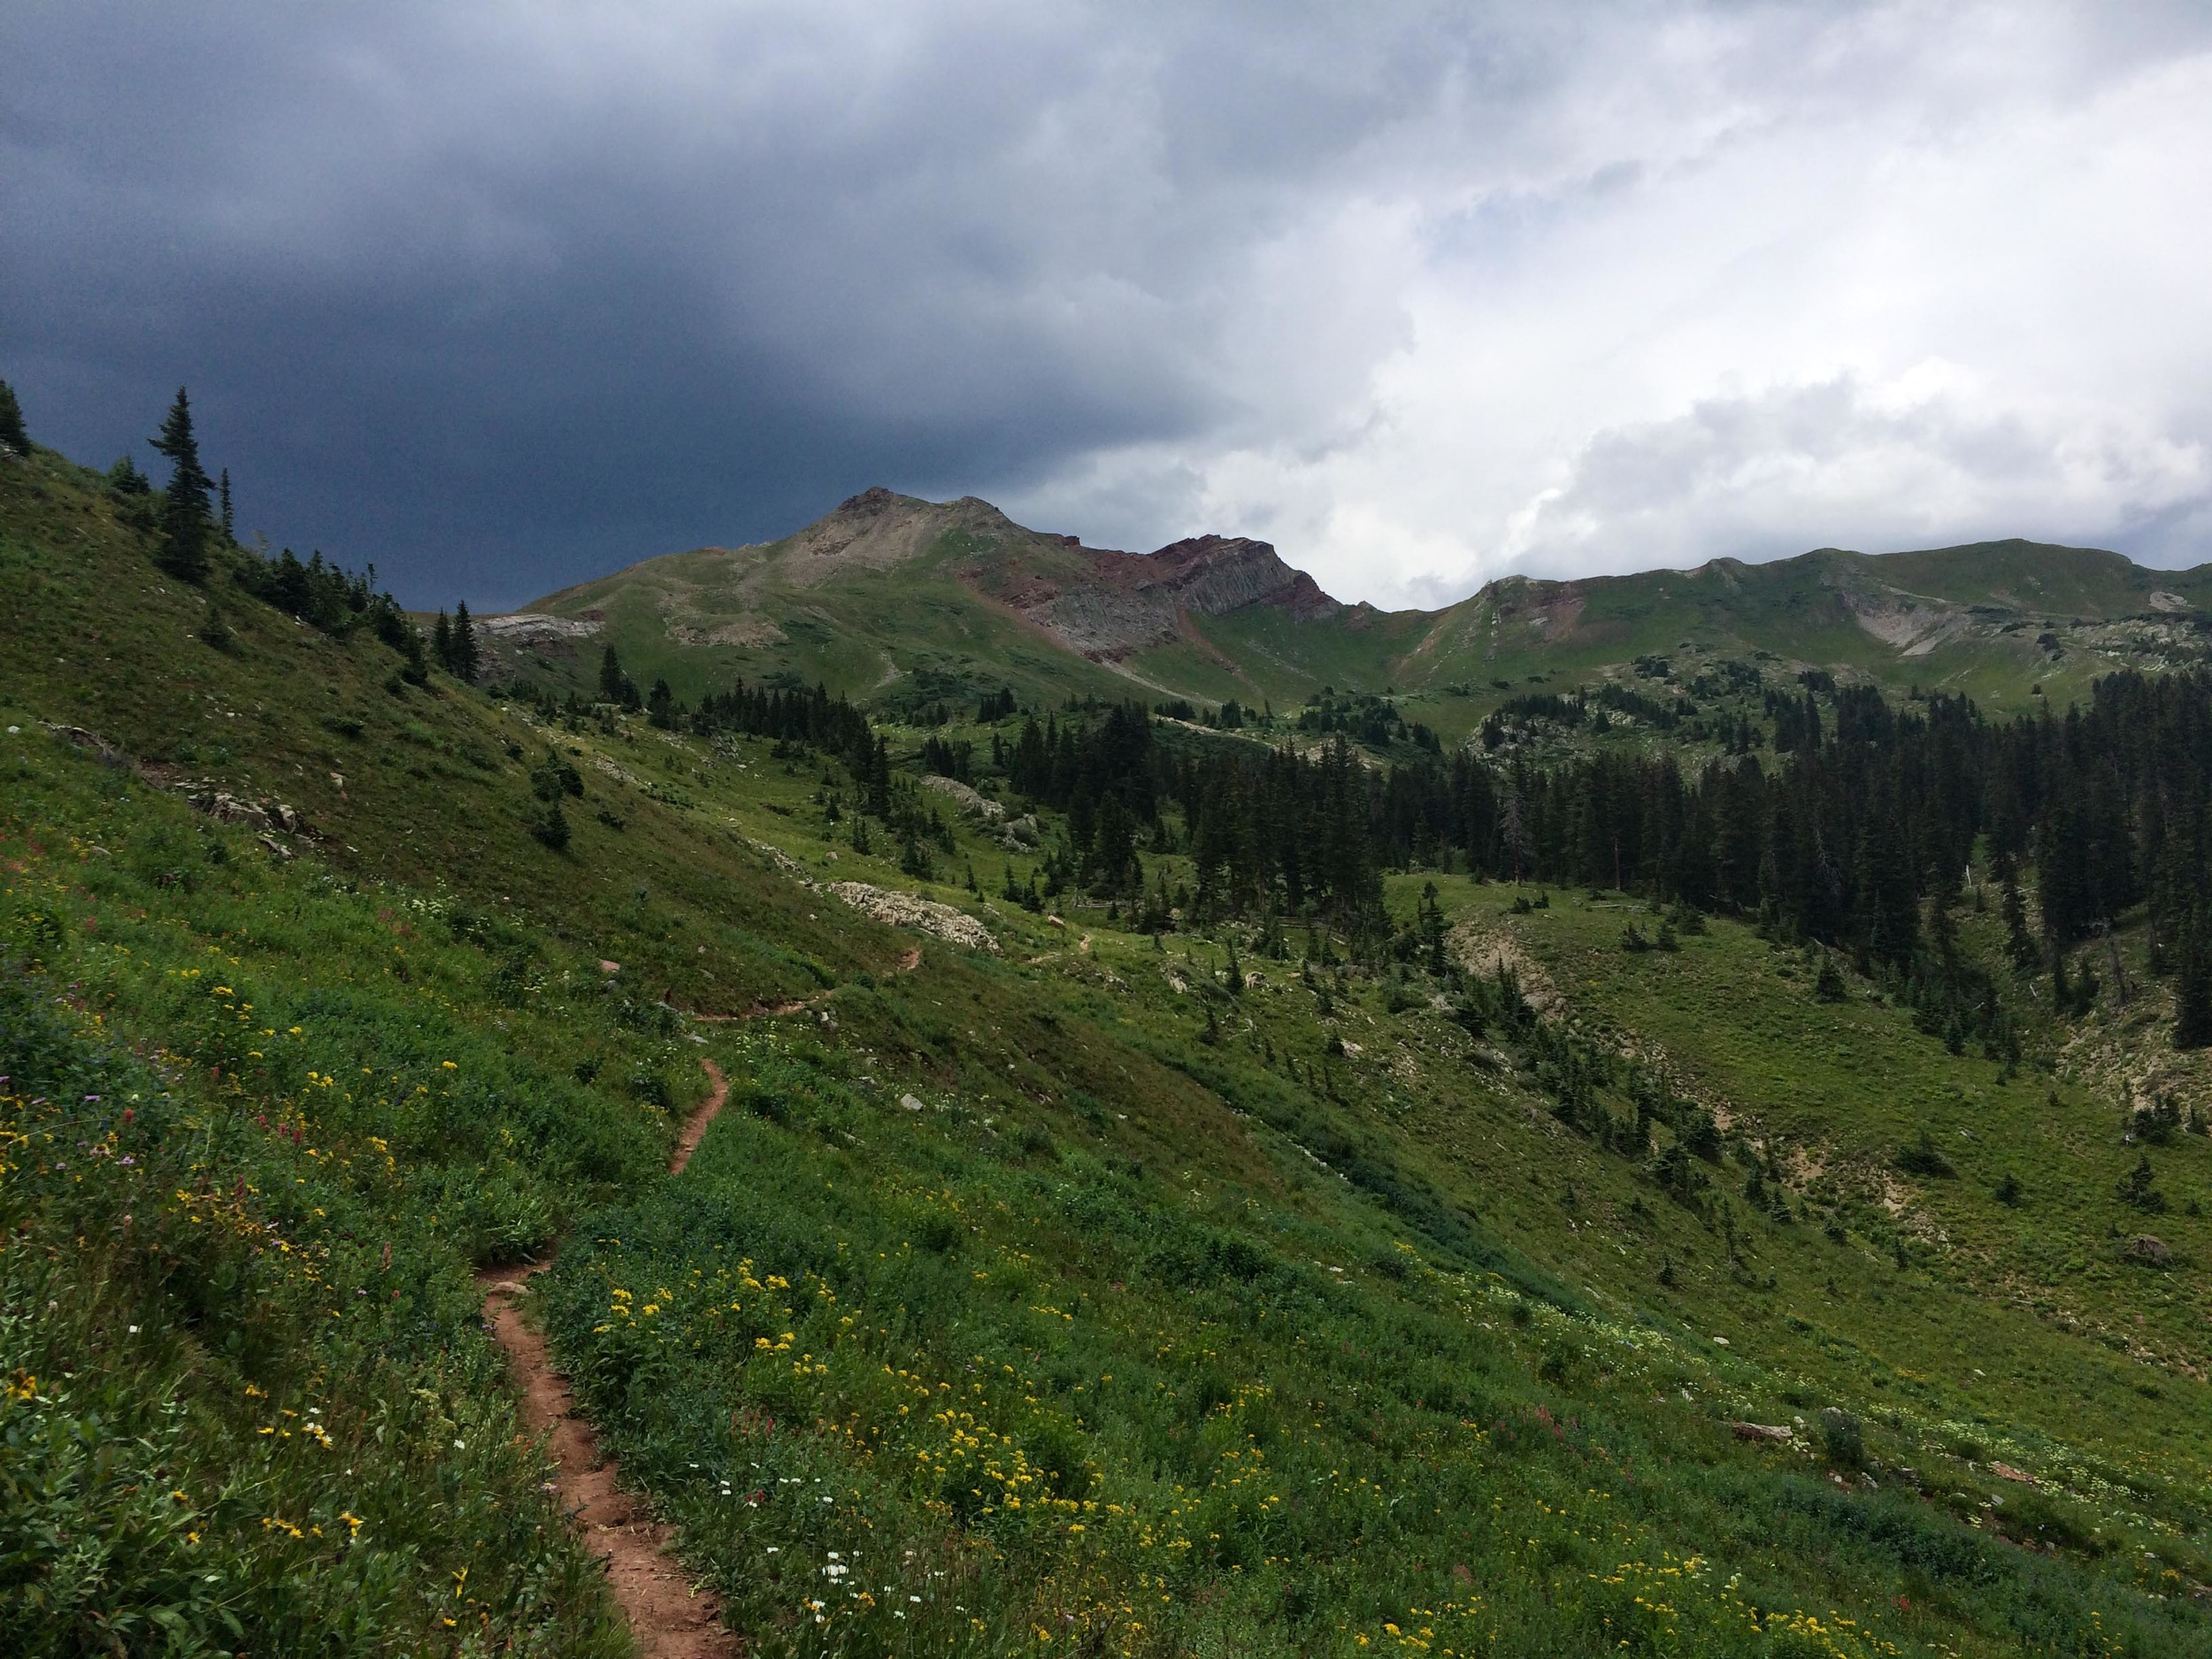 Storm clouds brewing over Black Hawk Pass. PHOTO BY WILLOW BELDEN